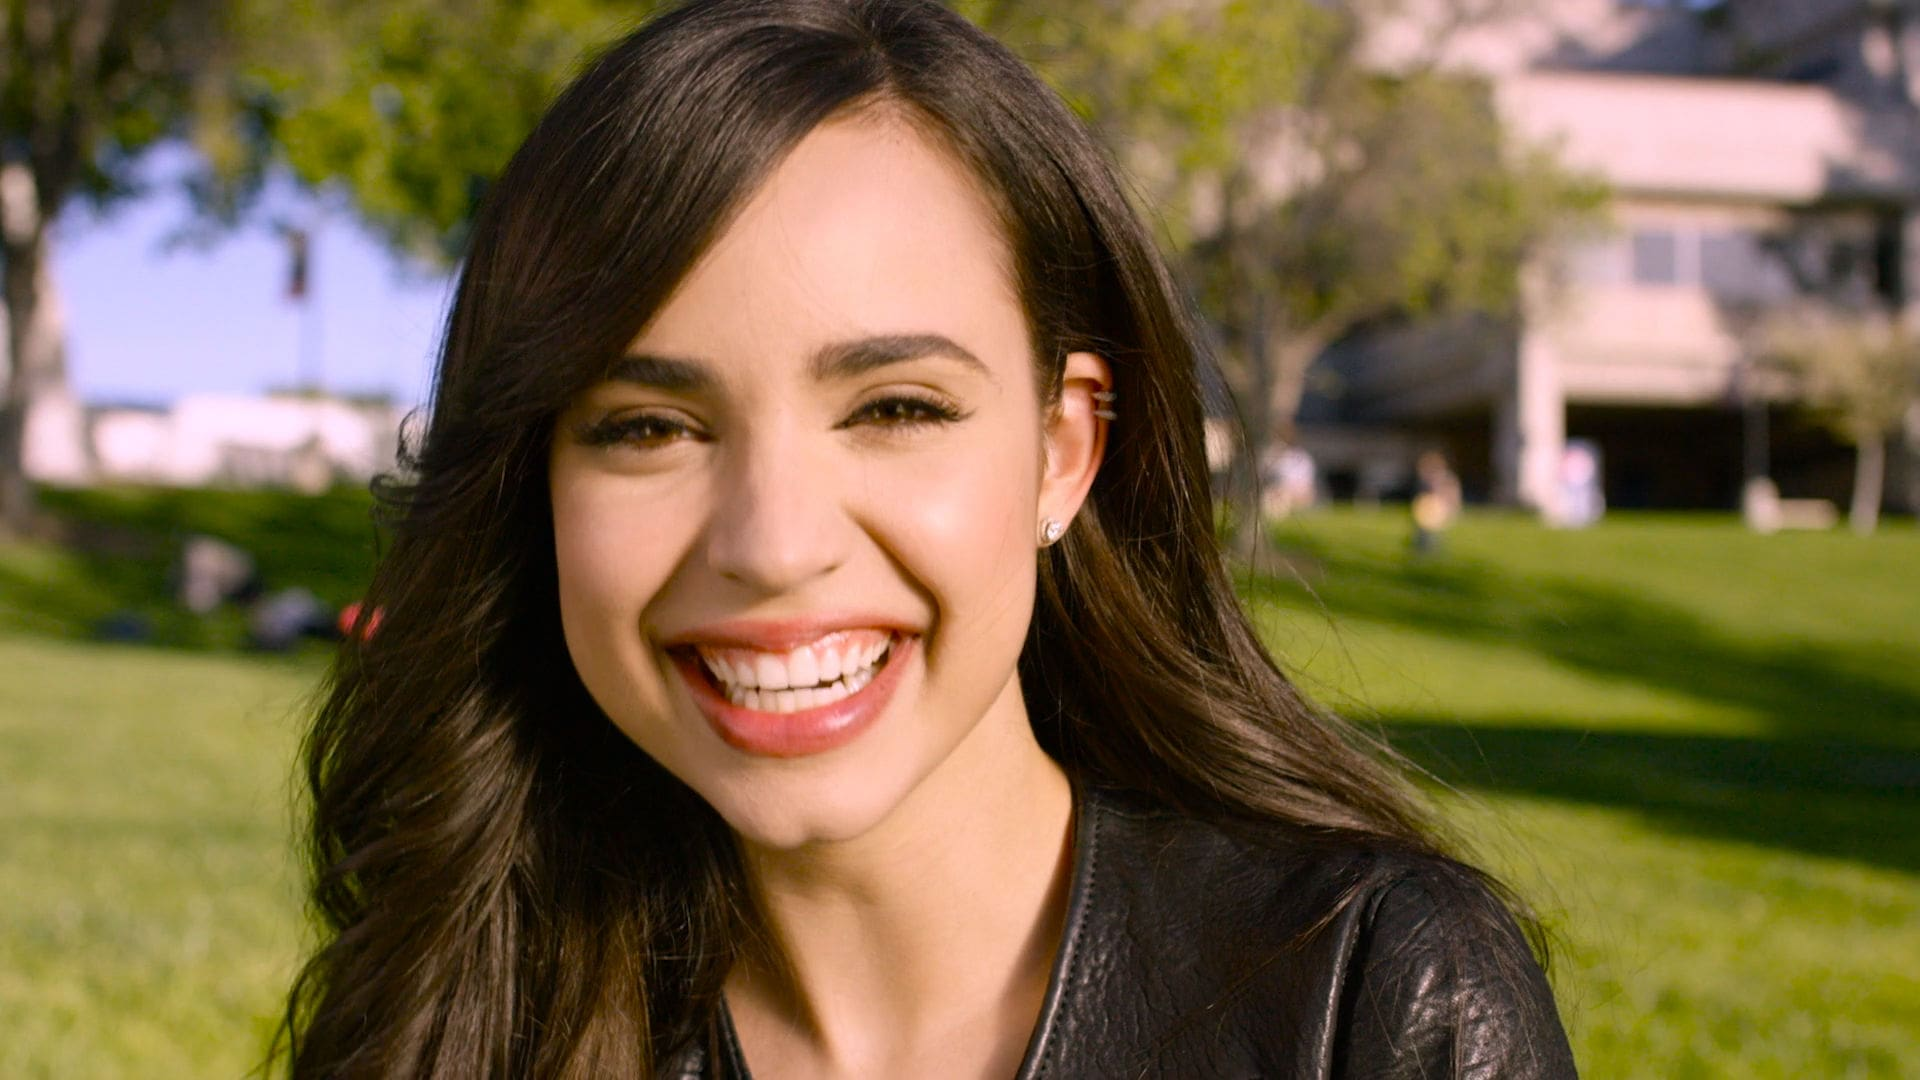 Showing Images For Sofia Carson Tits